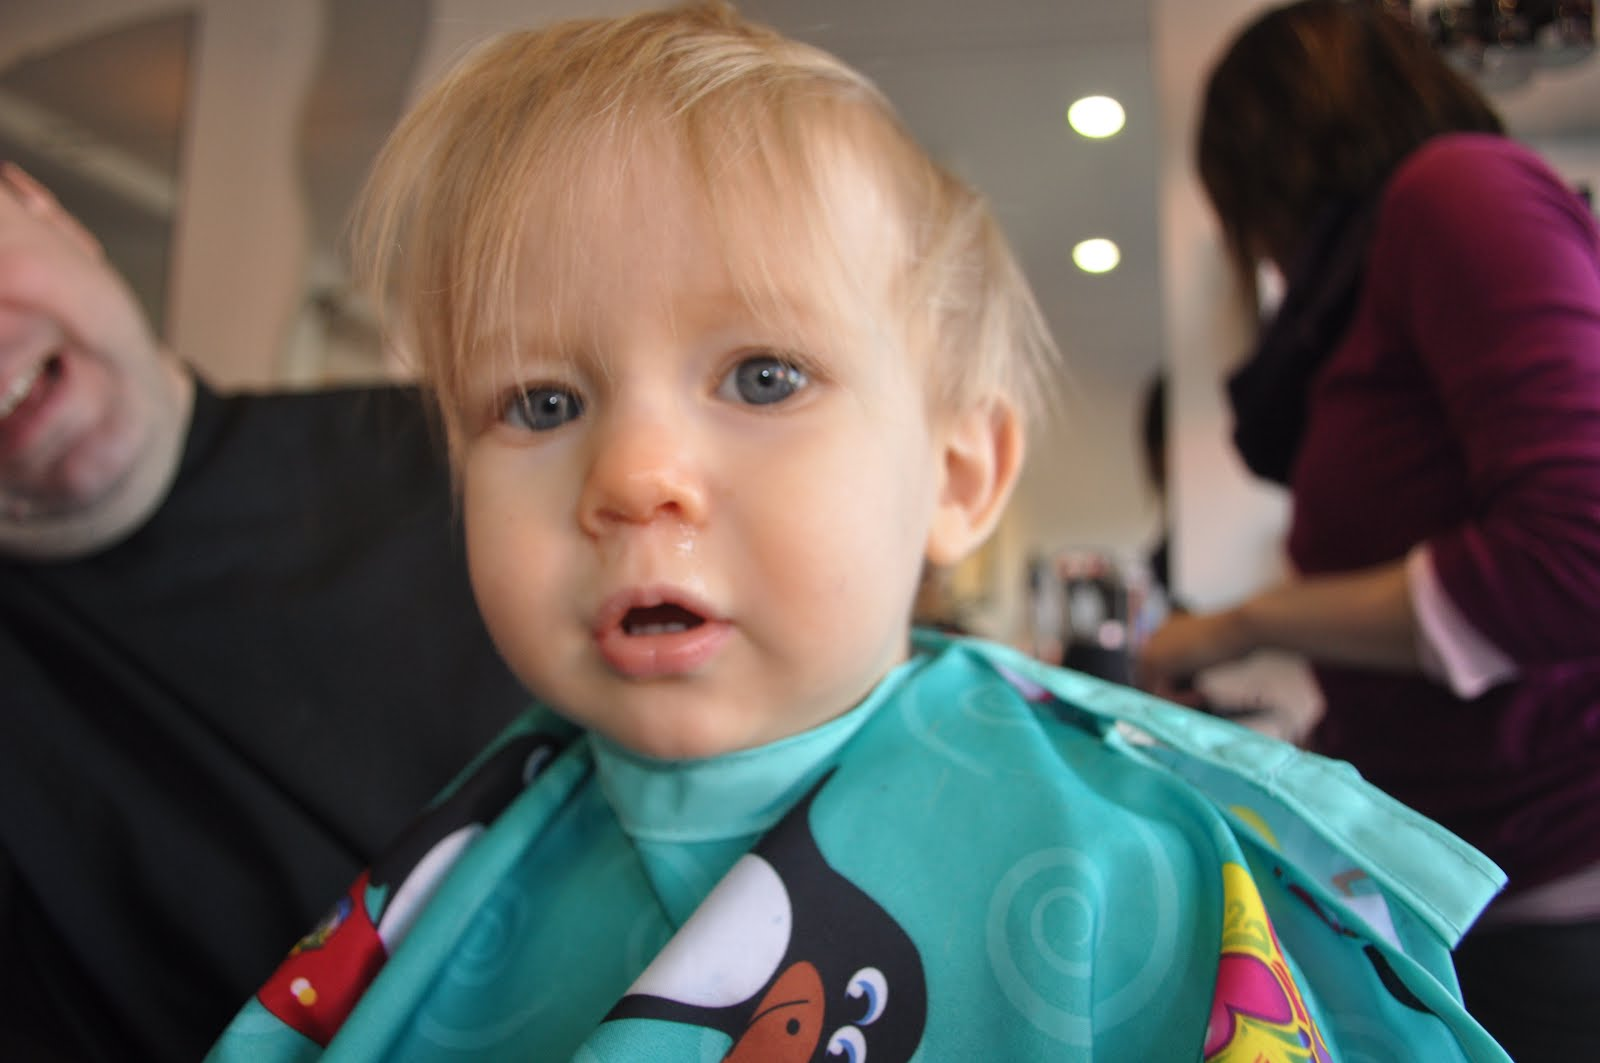 Stream of Consciousness: Baby Boy's first hair cut